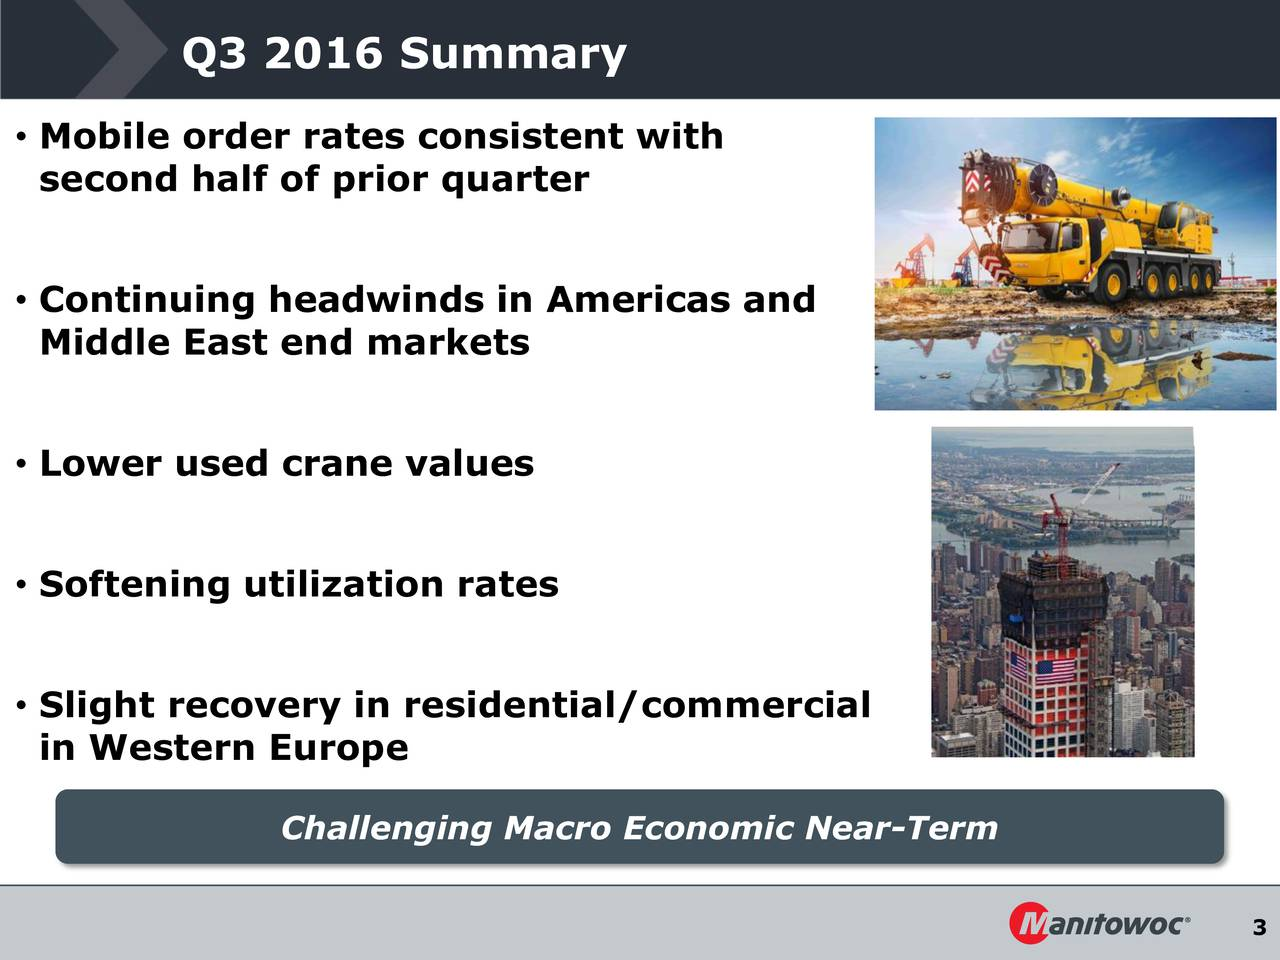 Mobile order rates consistent with second half of prior quarter Continuing headwinds in Americas and Middle East end markets Lower used crane values Softening utilization rates Slight recovery in residential/commercial in Western Europe Challenging Macro Economic Near-Term 3